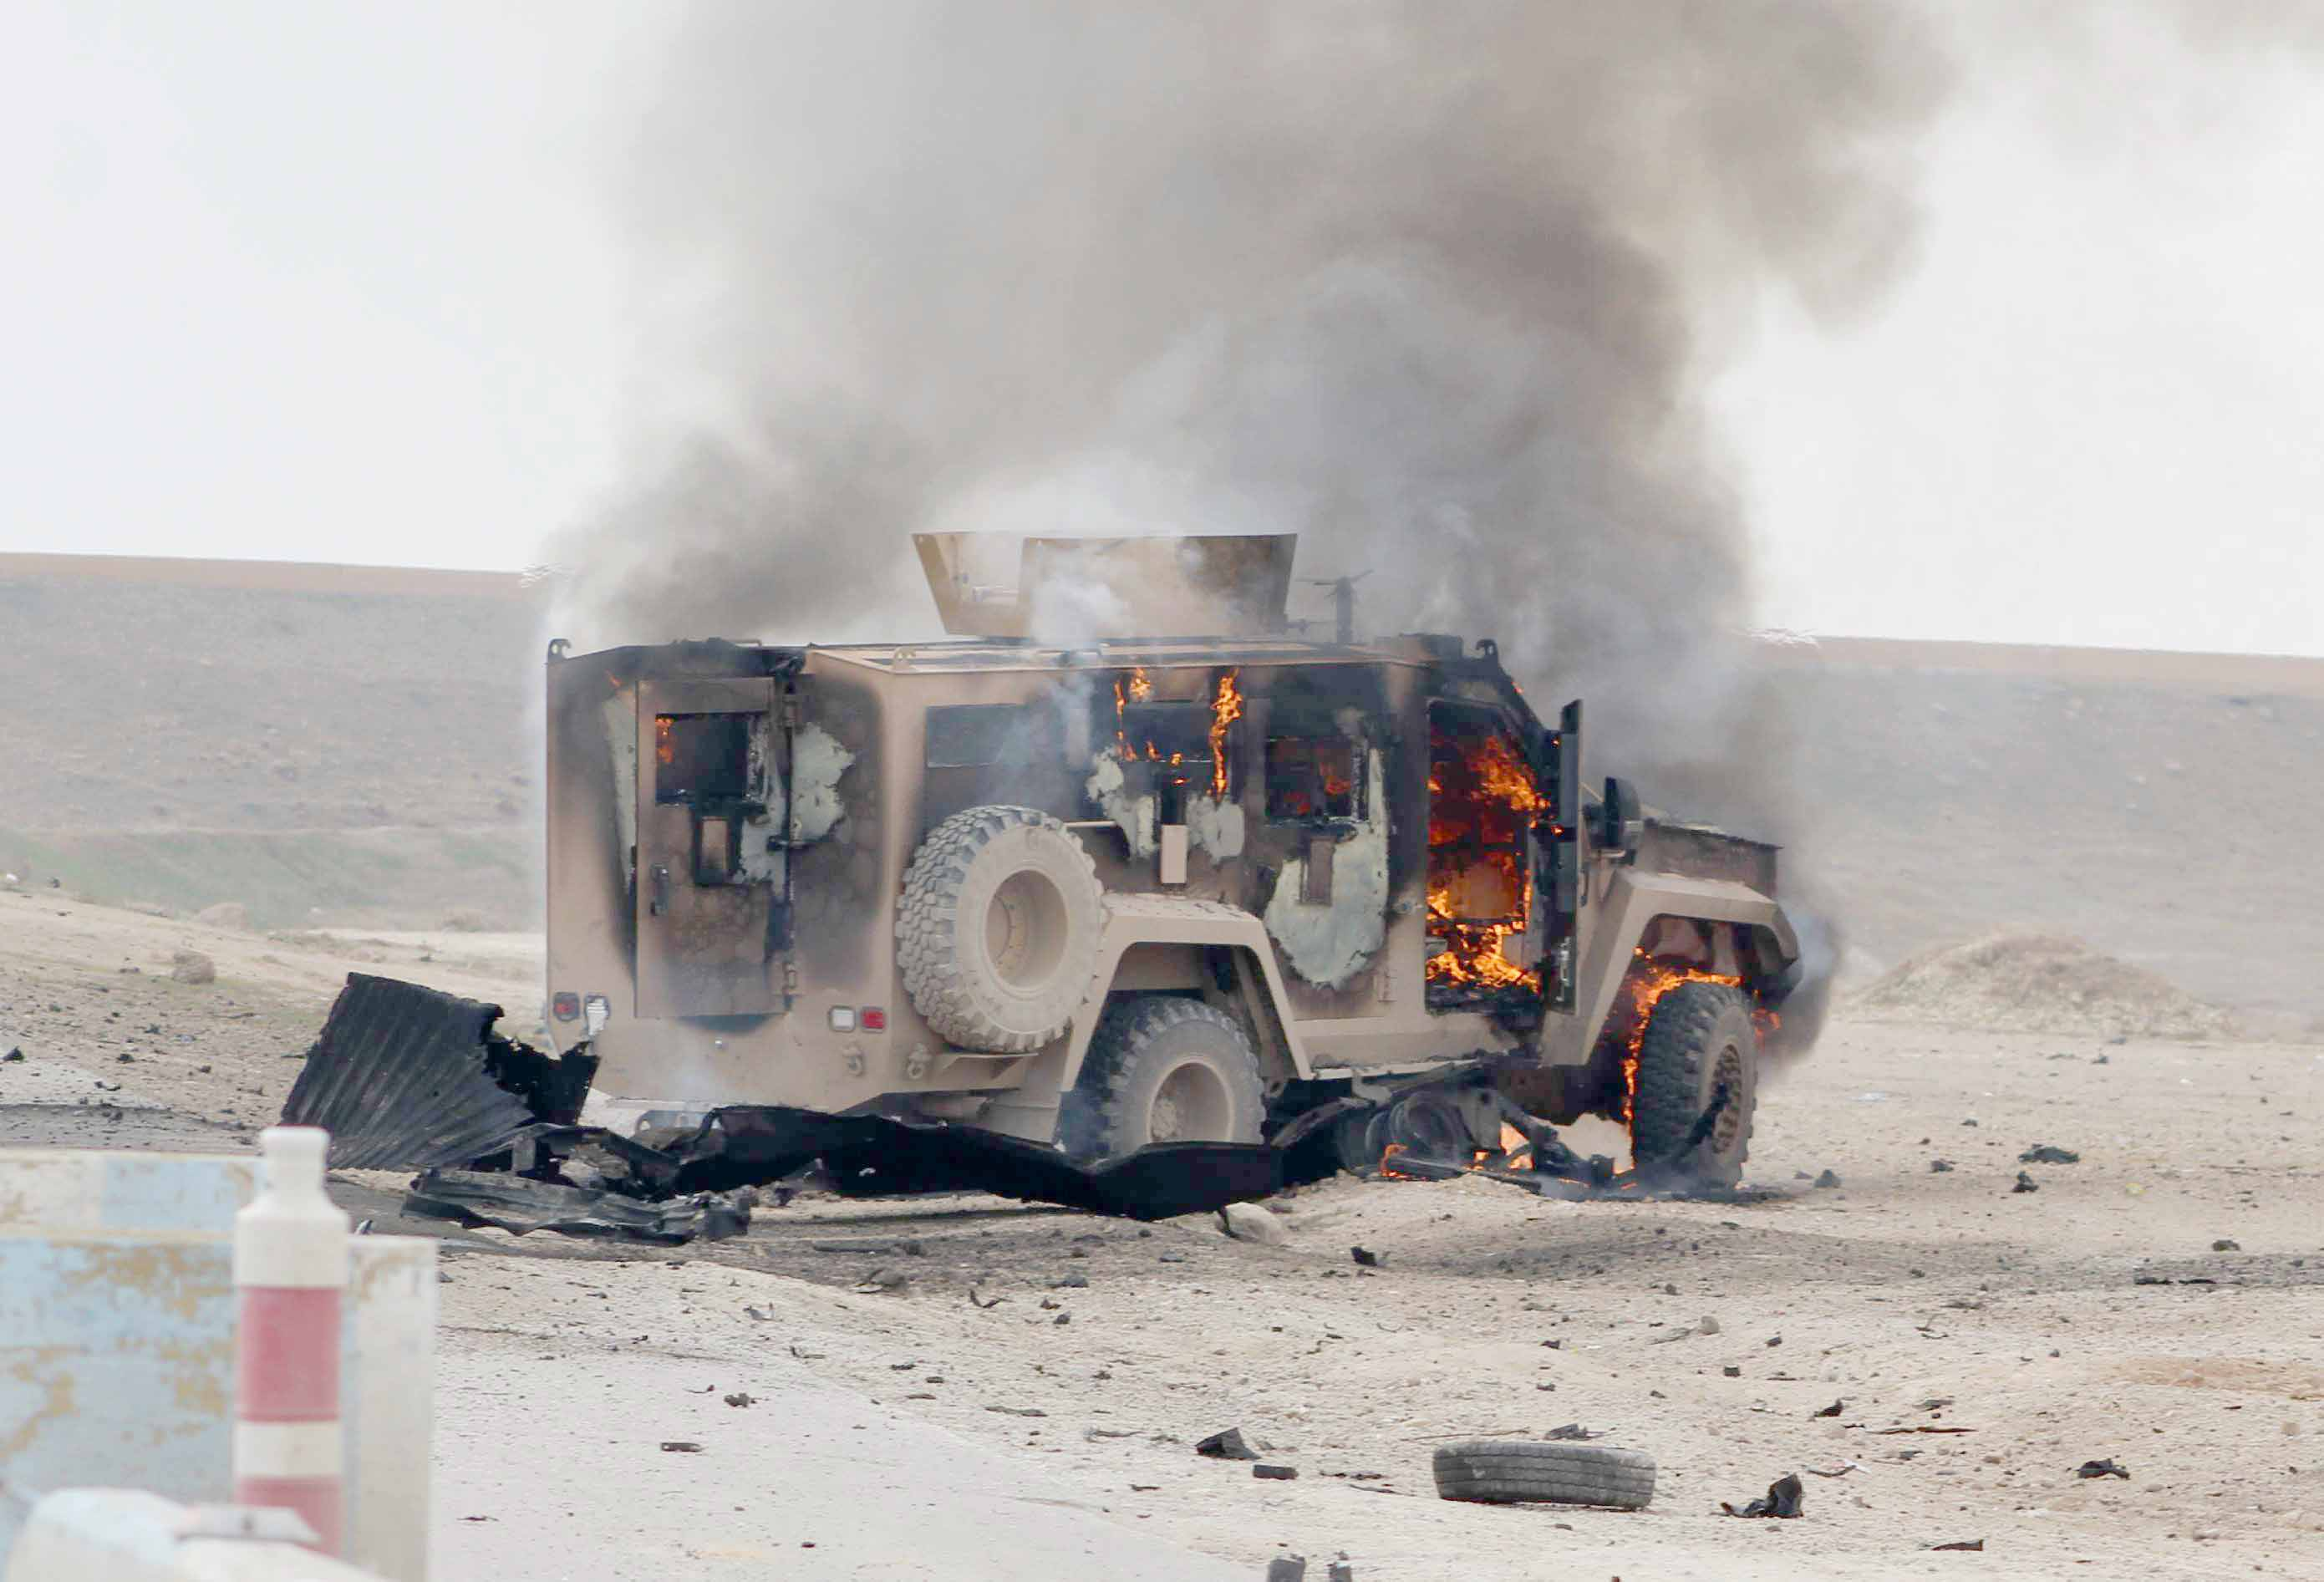 A military vehicle burns at the scene of a suicide car bomb attack in Syria's  north-eastern Hasakah province, January 21. (AFP)